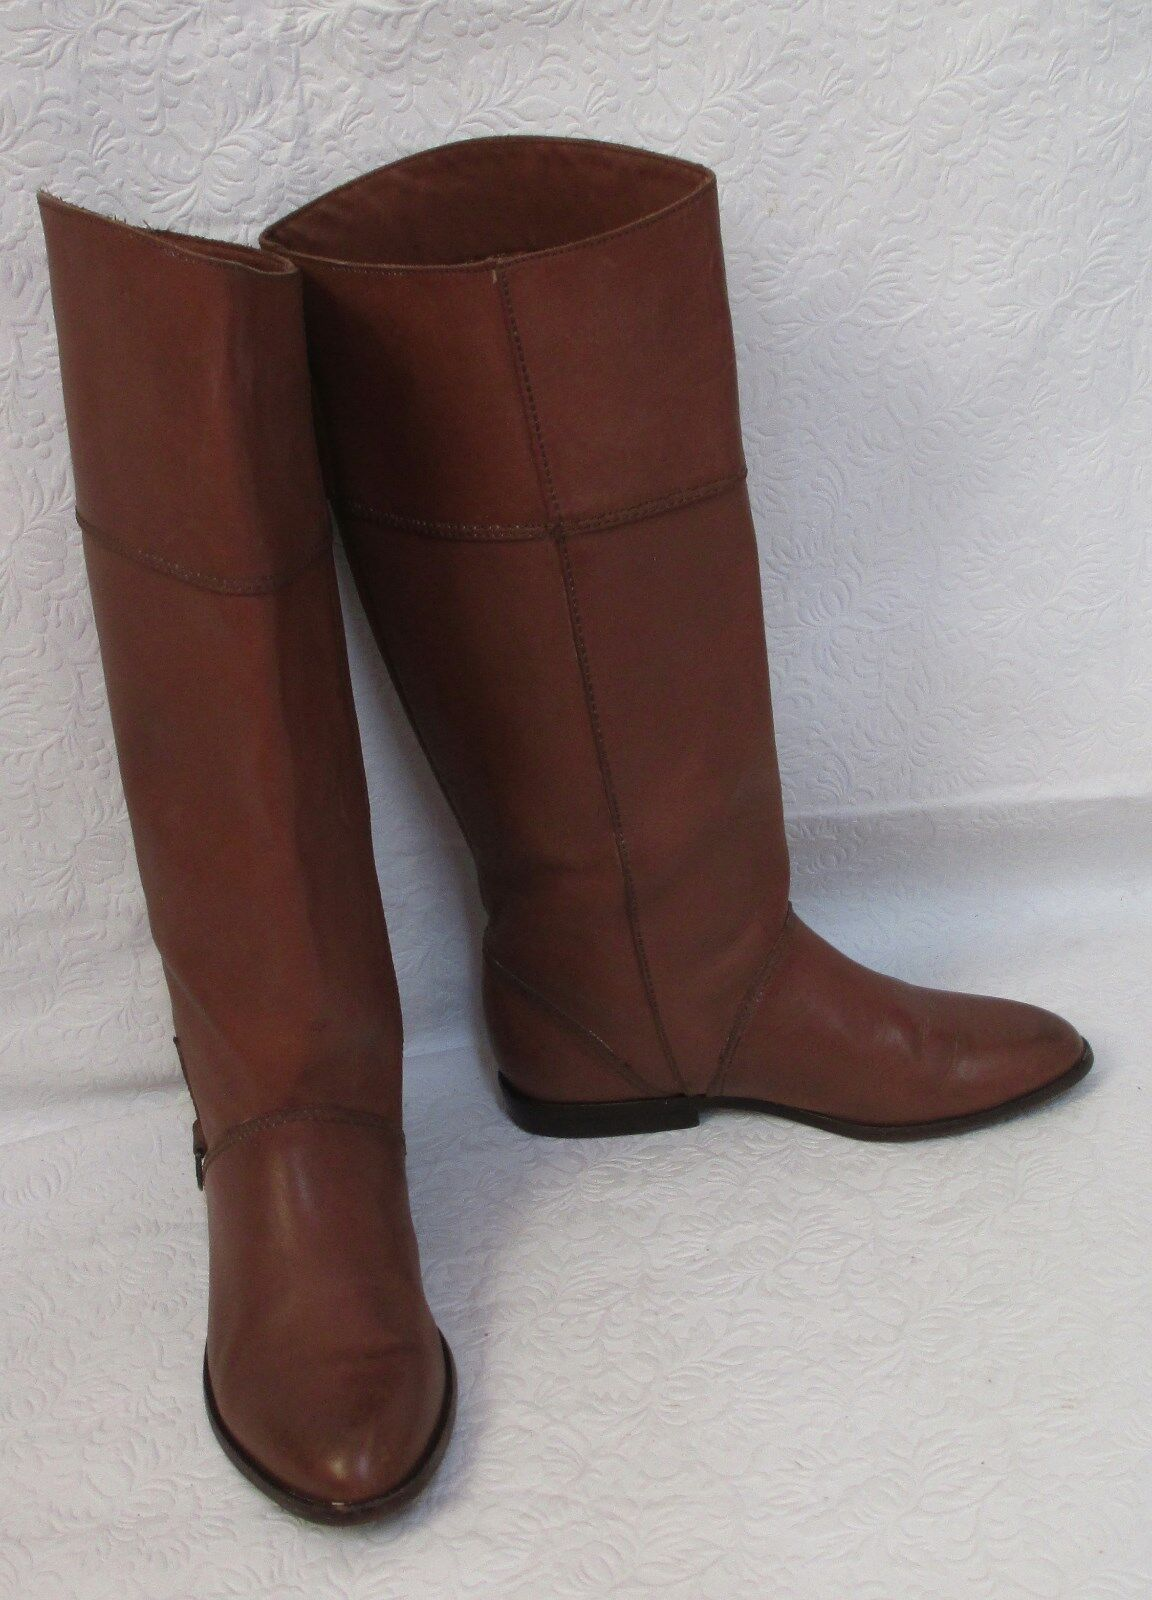 Women's Mister Shoes by Markon Footwear 3651 Leather Riding Equestrian Boots 7 M